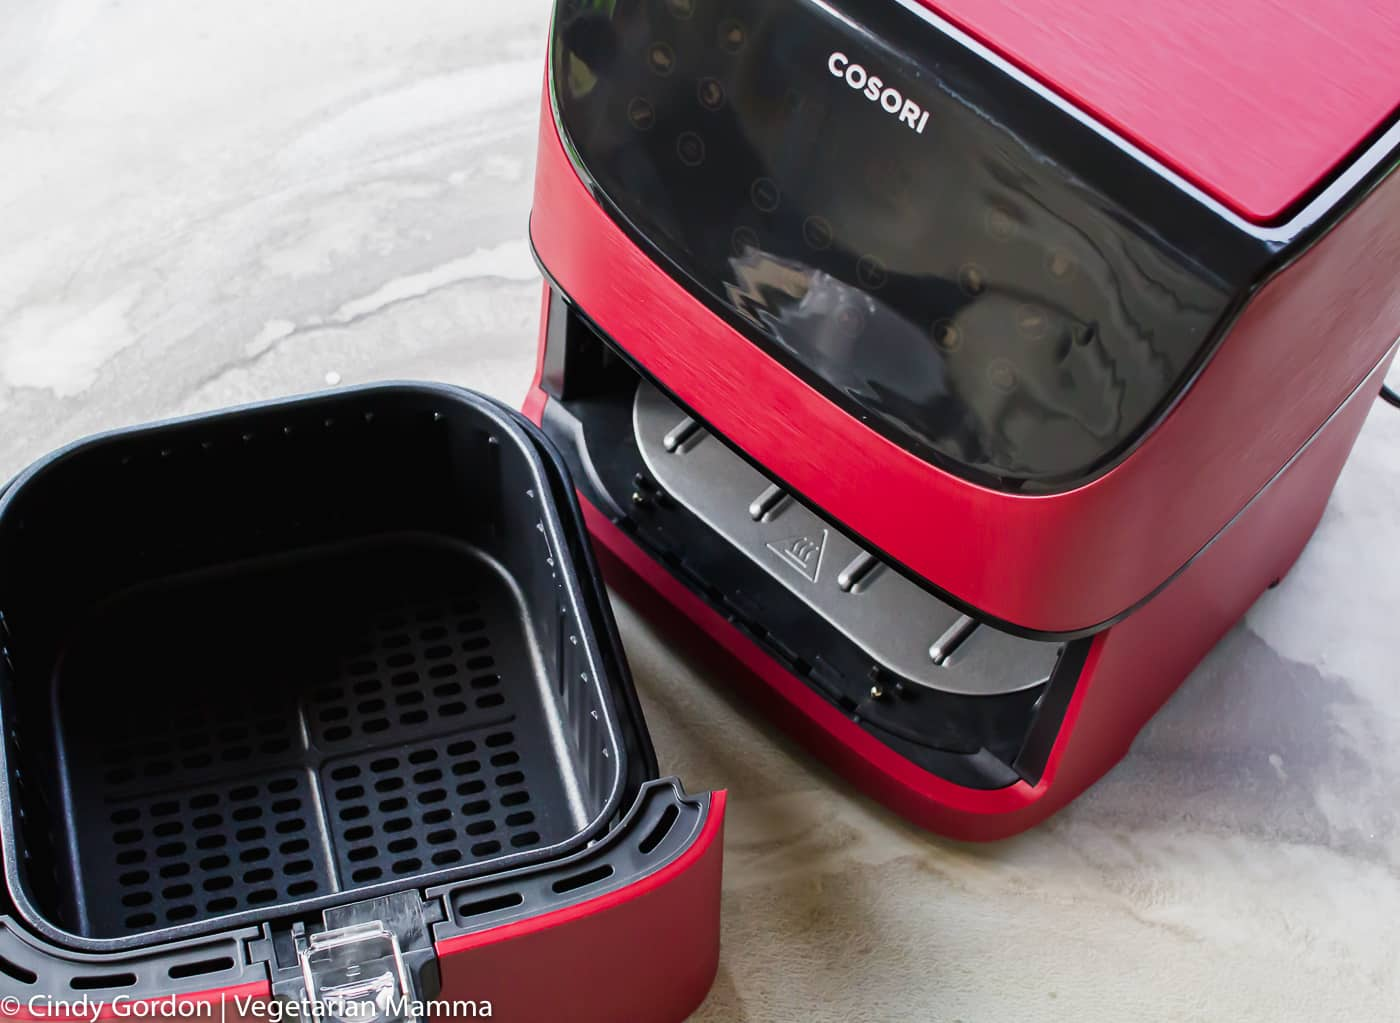 pictured is a red cosori air fryer with basket out of the unit